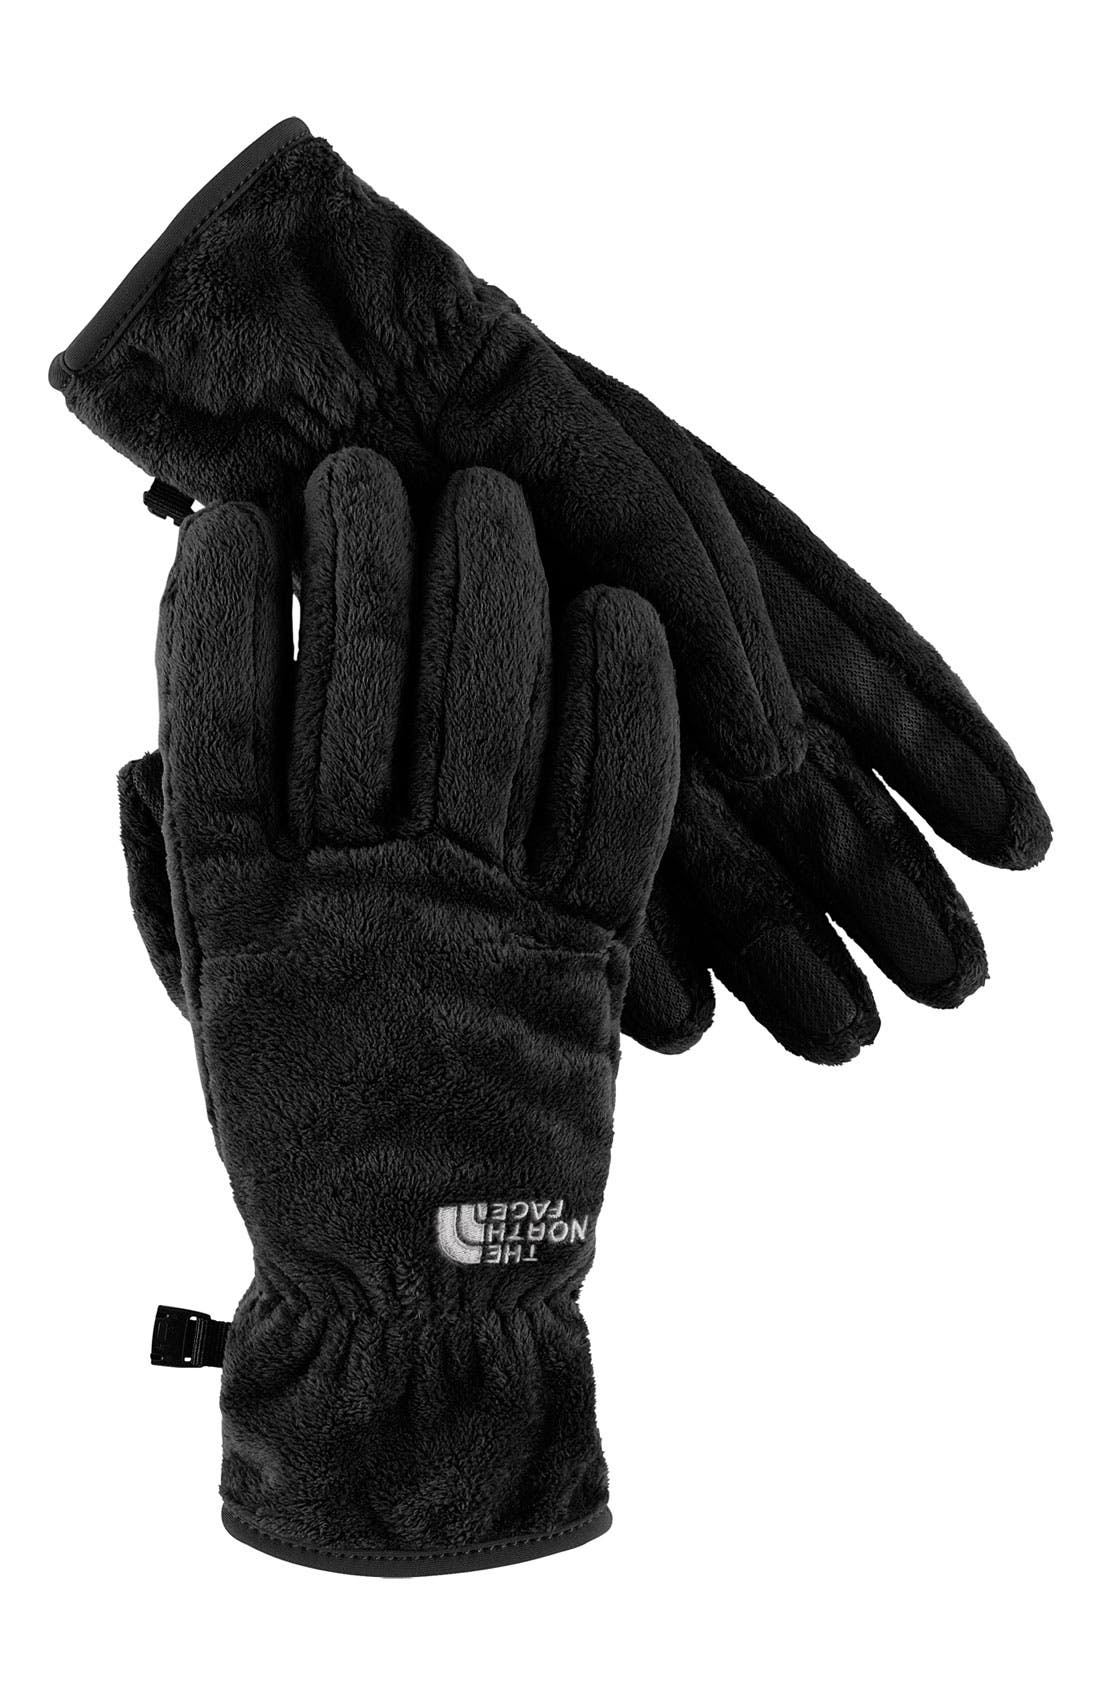 Alternate Image 1 Selected - The North Face 'Shiso' Gloves (Women)